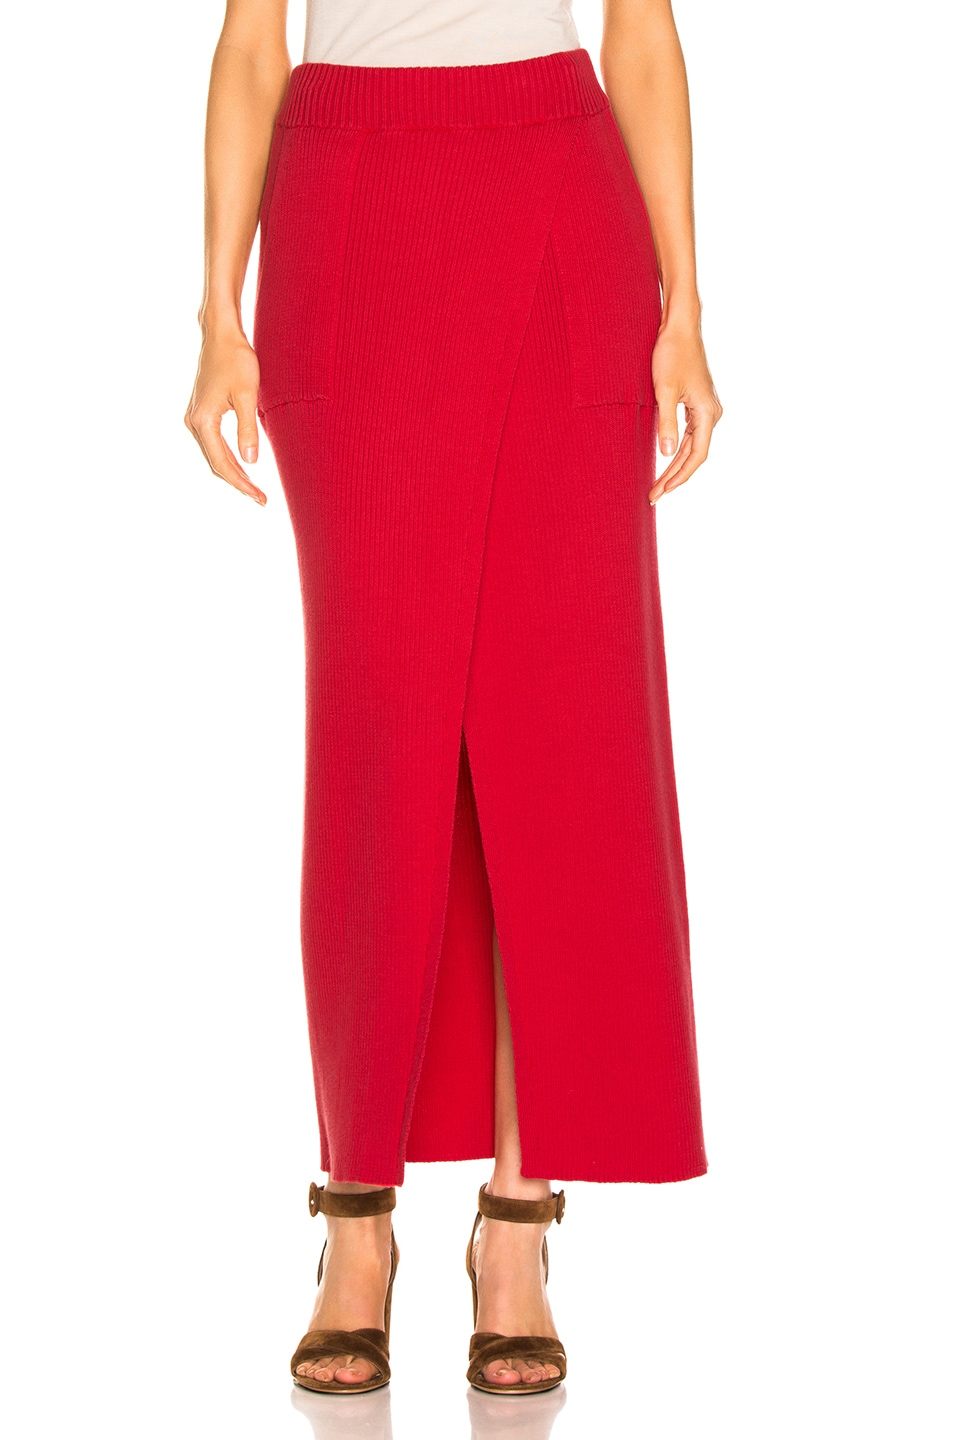 Image 1 of Mara Hoffman Elena Skirt in Red